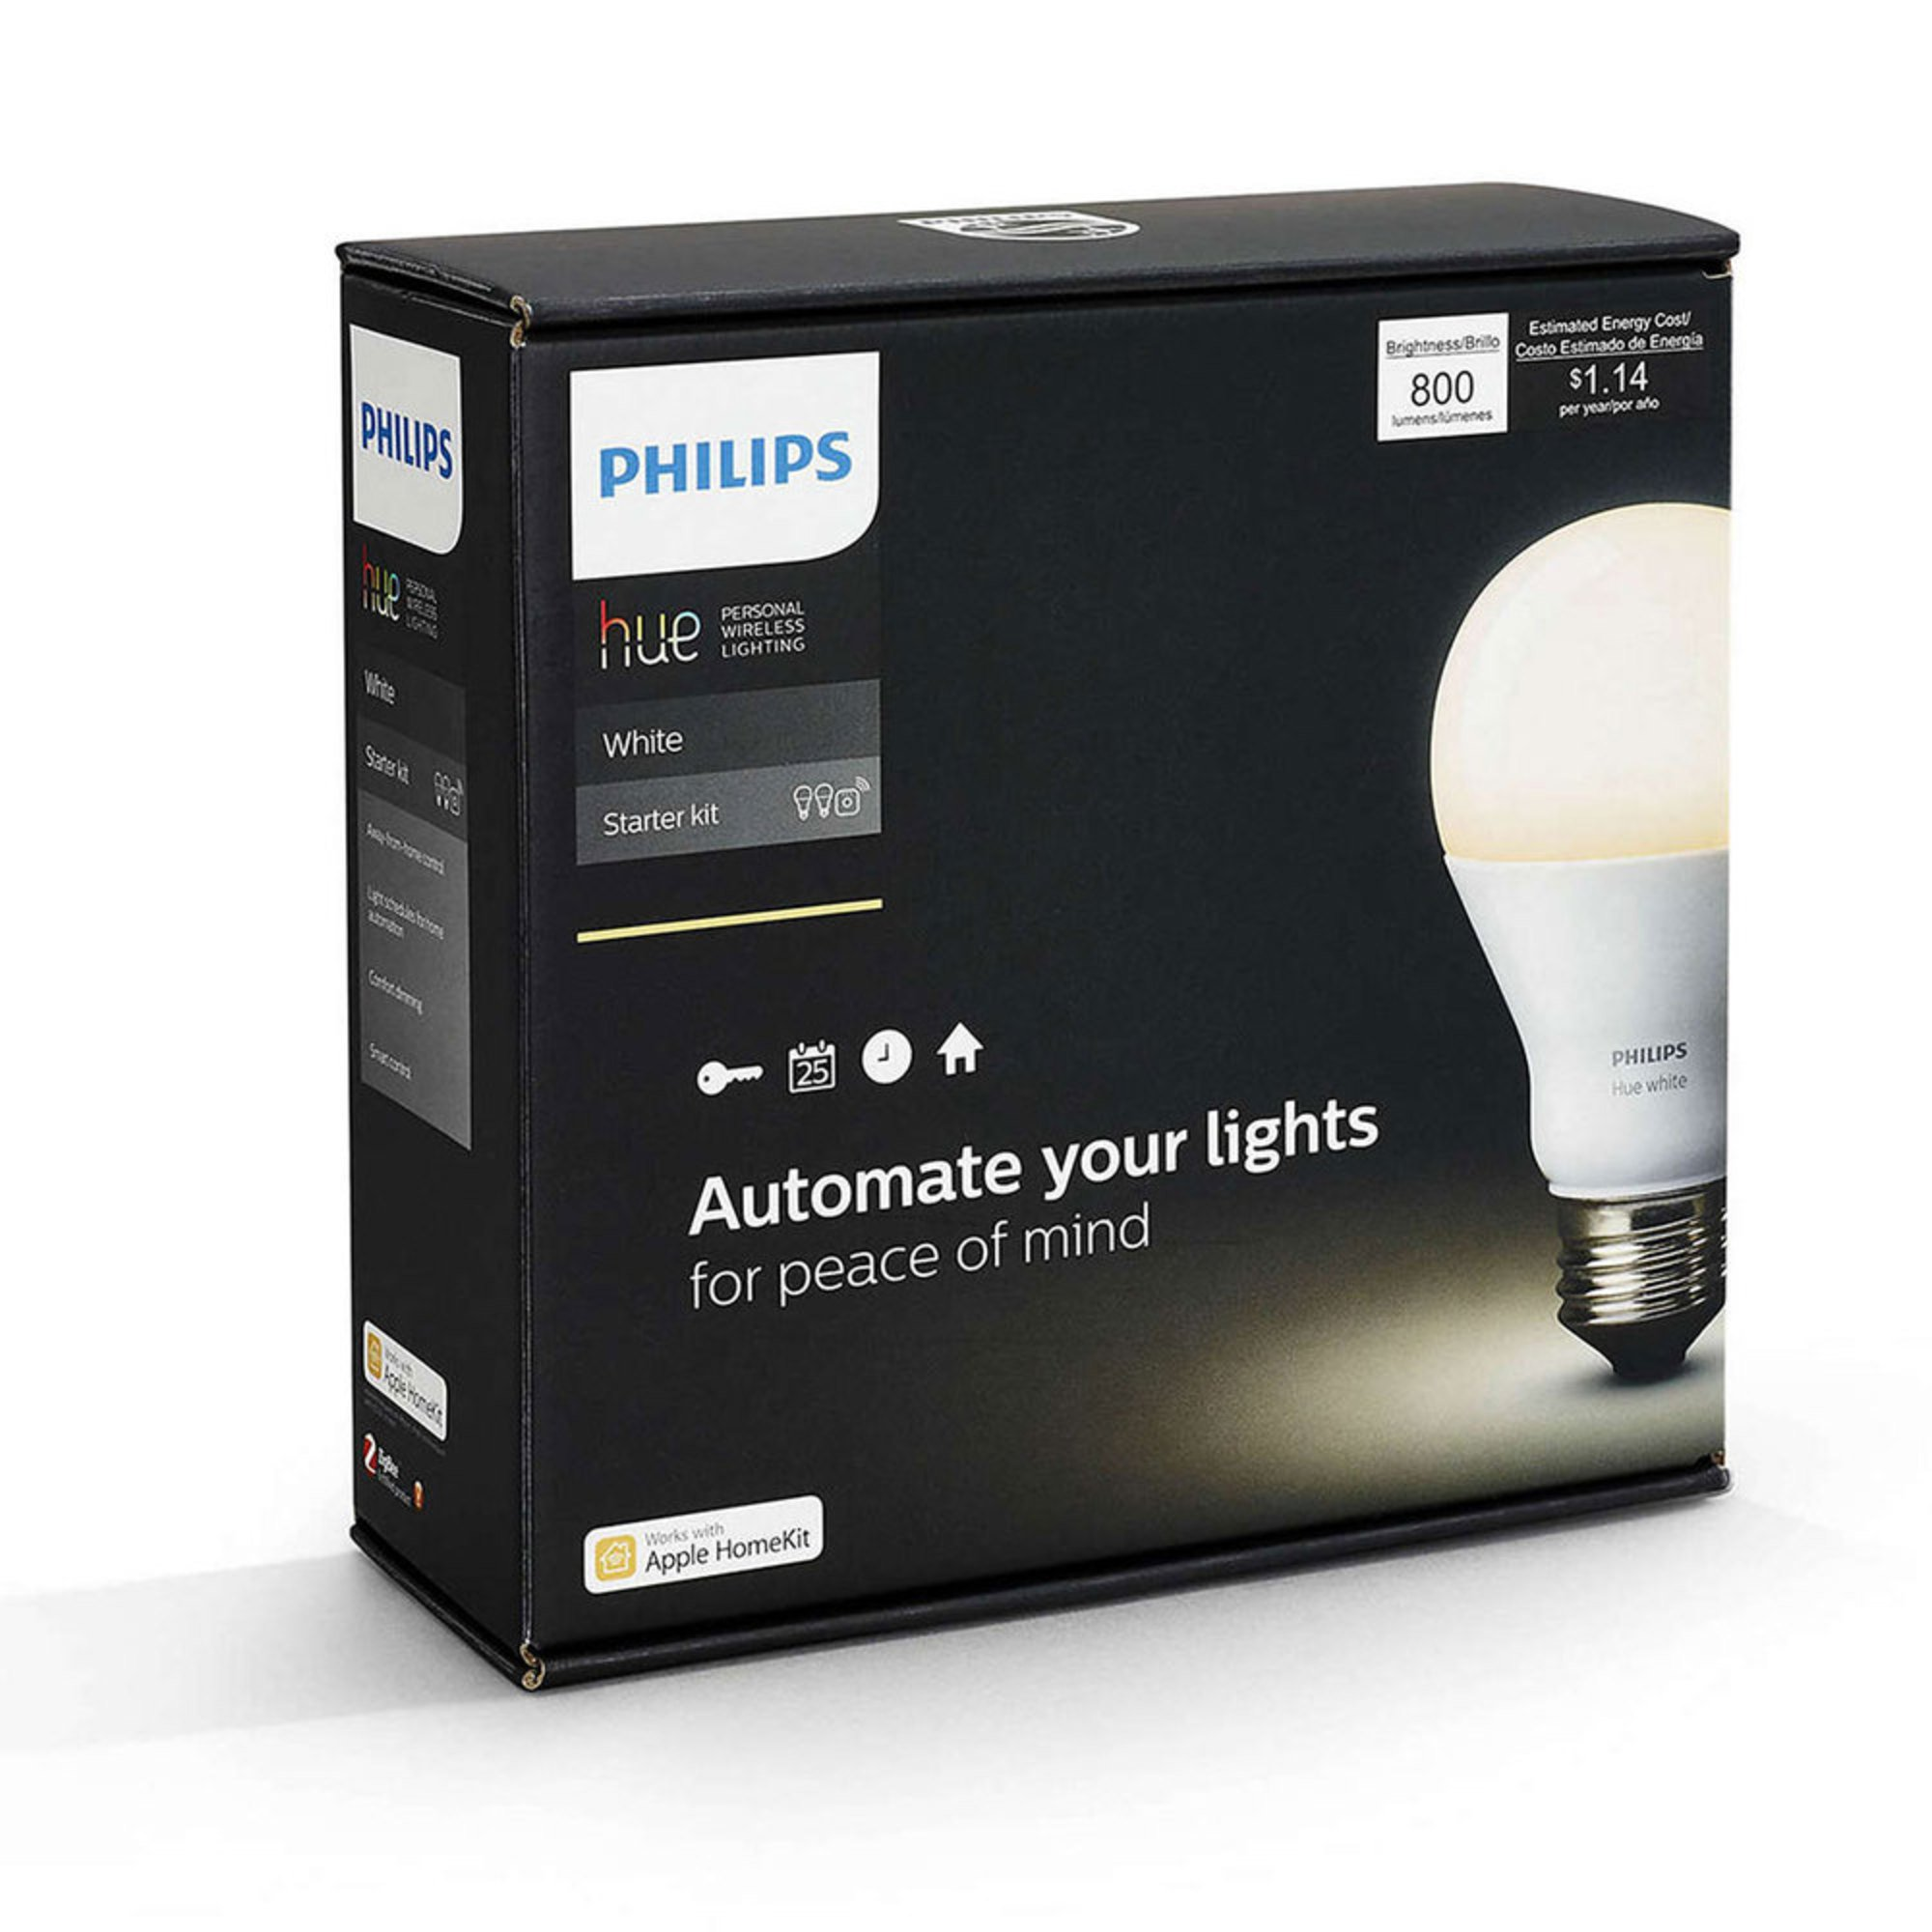 philips hue white a19 starter kit 455287 smart. Black Bedroom Furniture Sets. Home Design Ideas